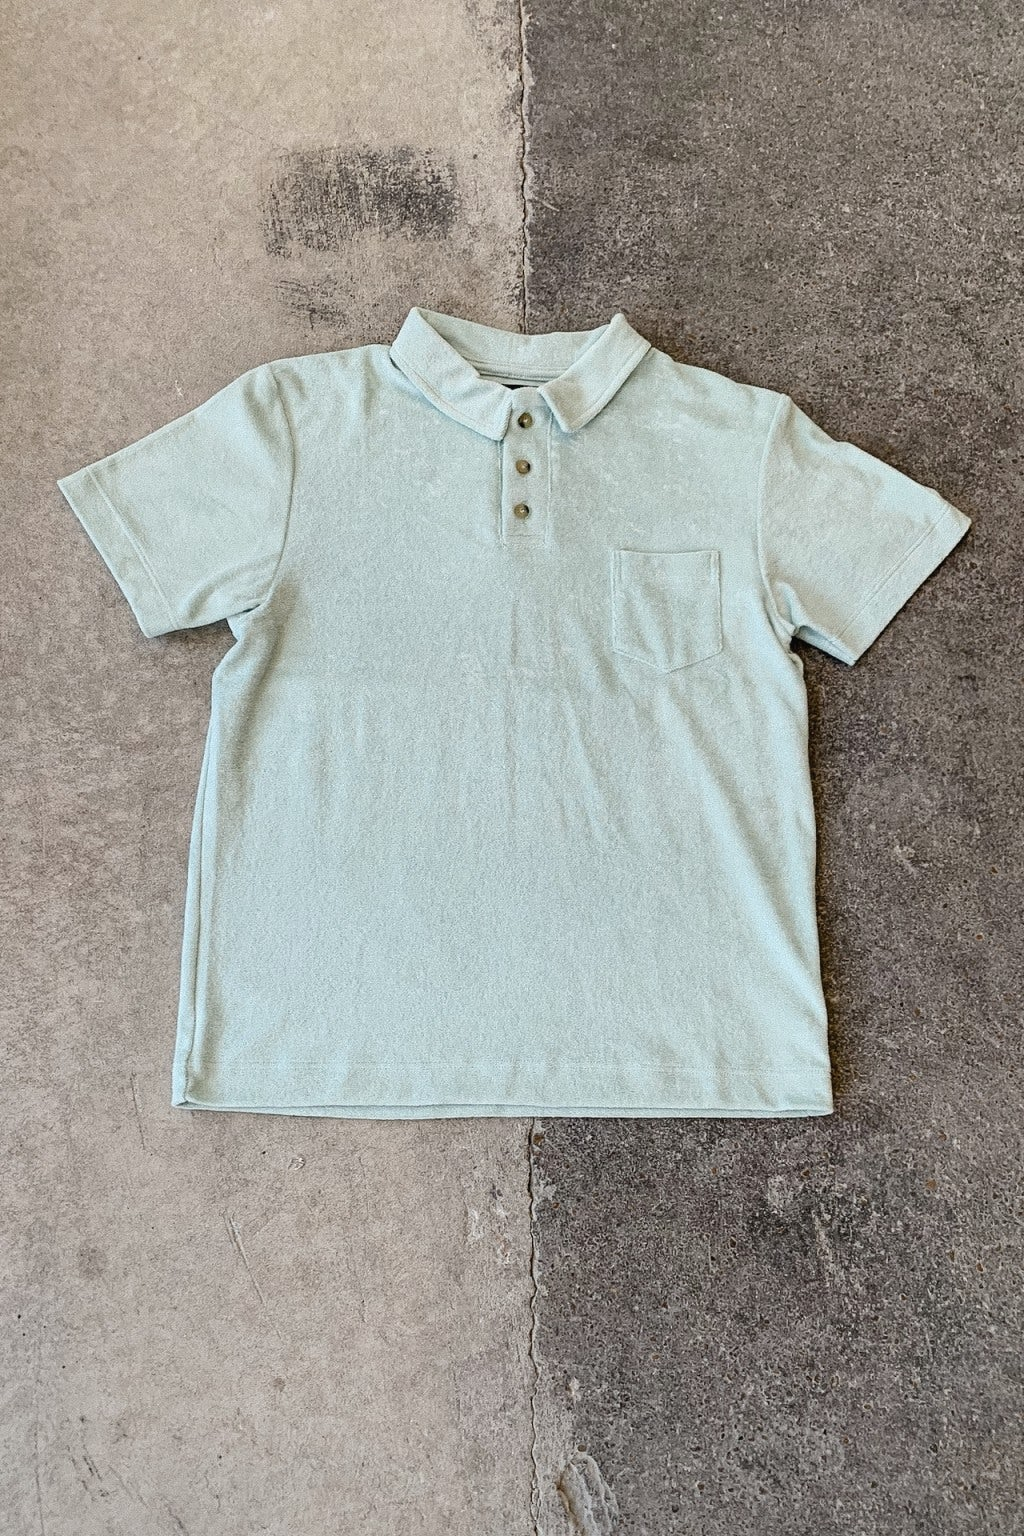 Howlin' Mr. Fantasy Shirt Soft Mint